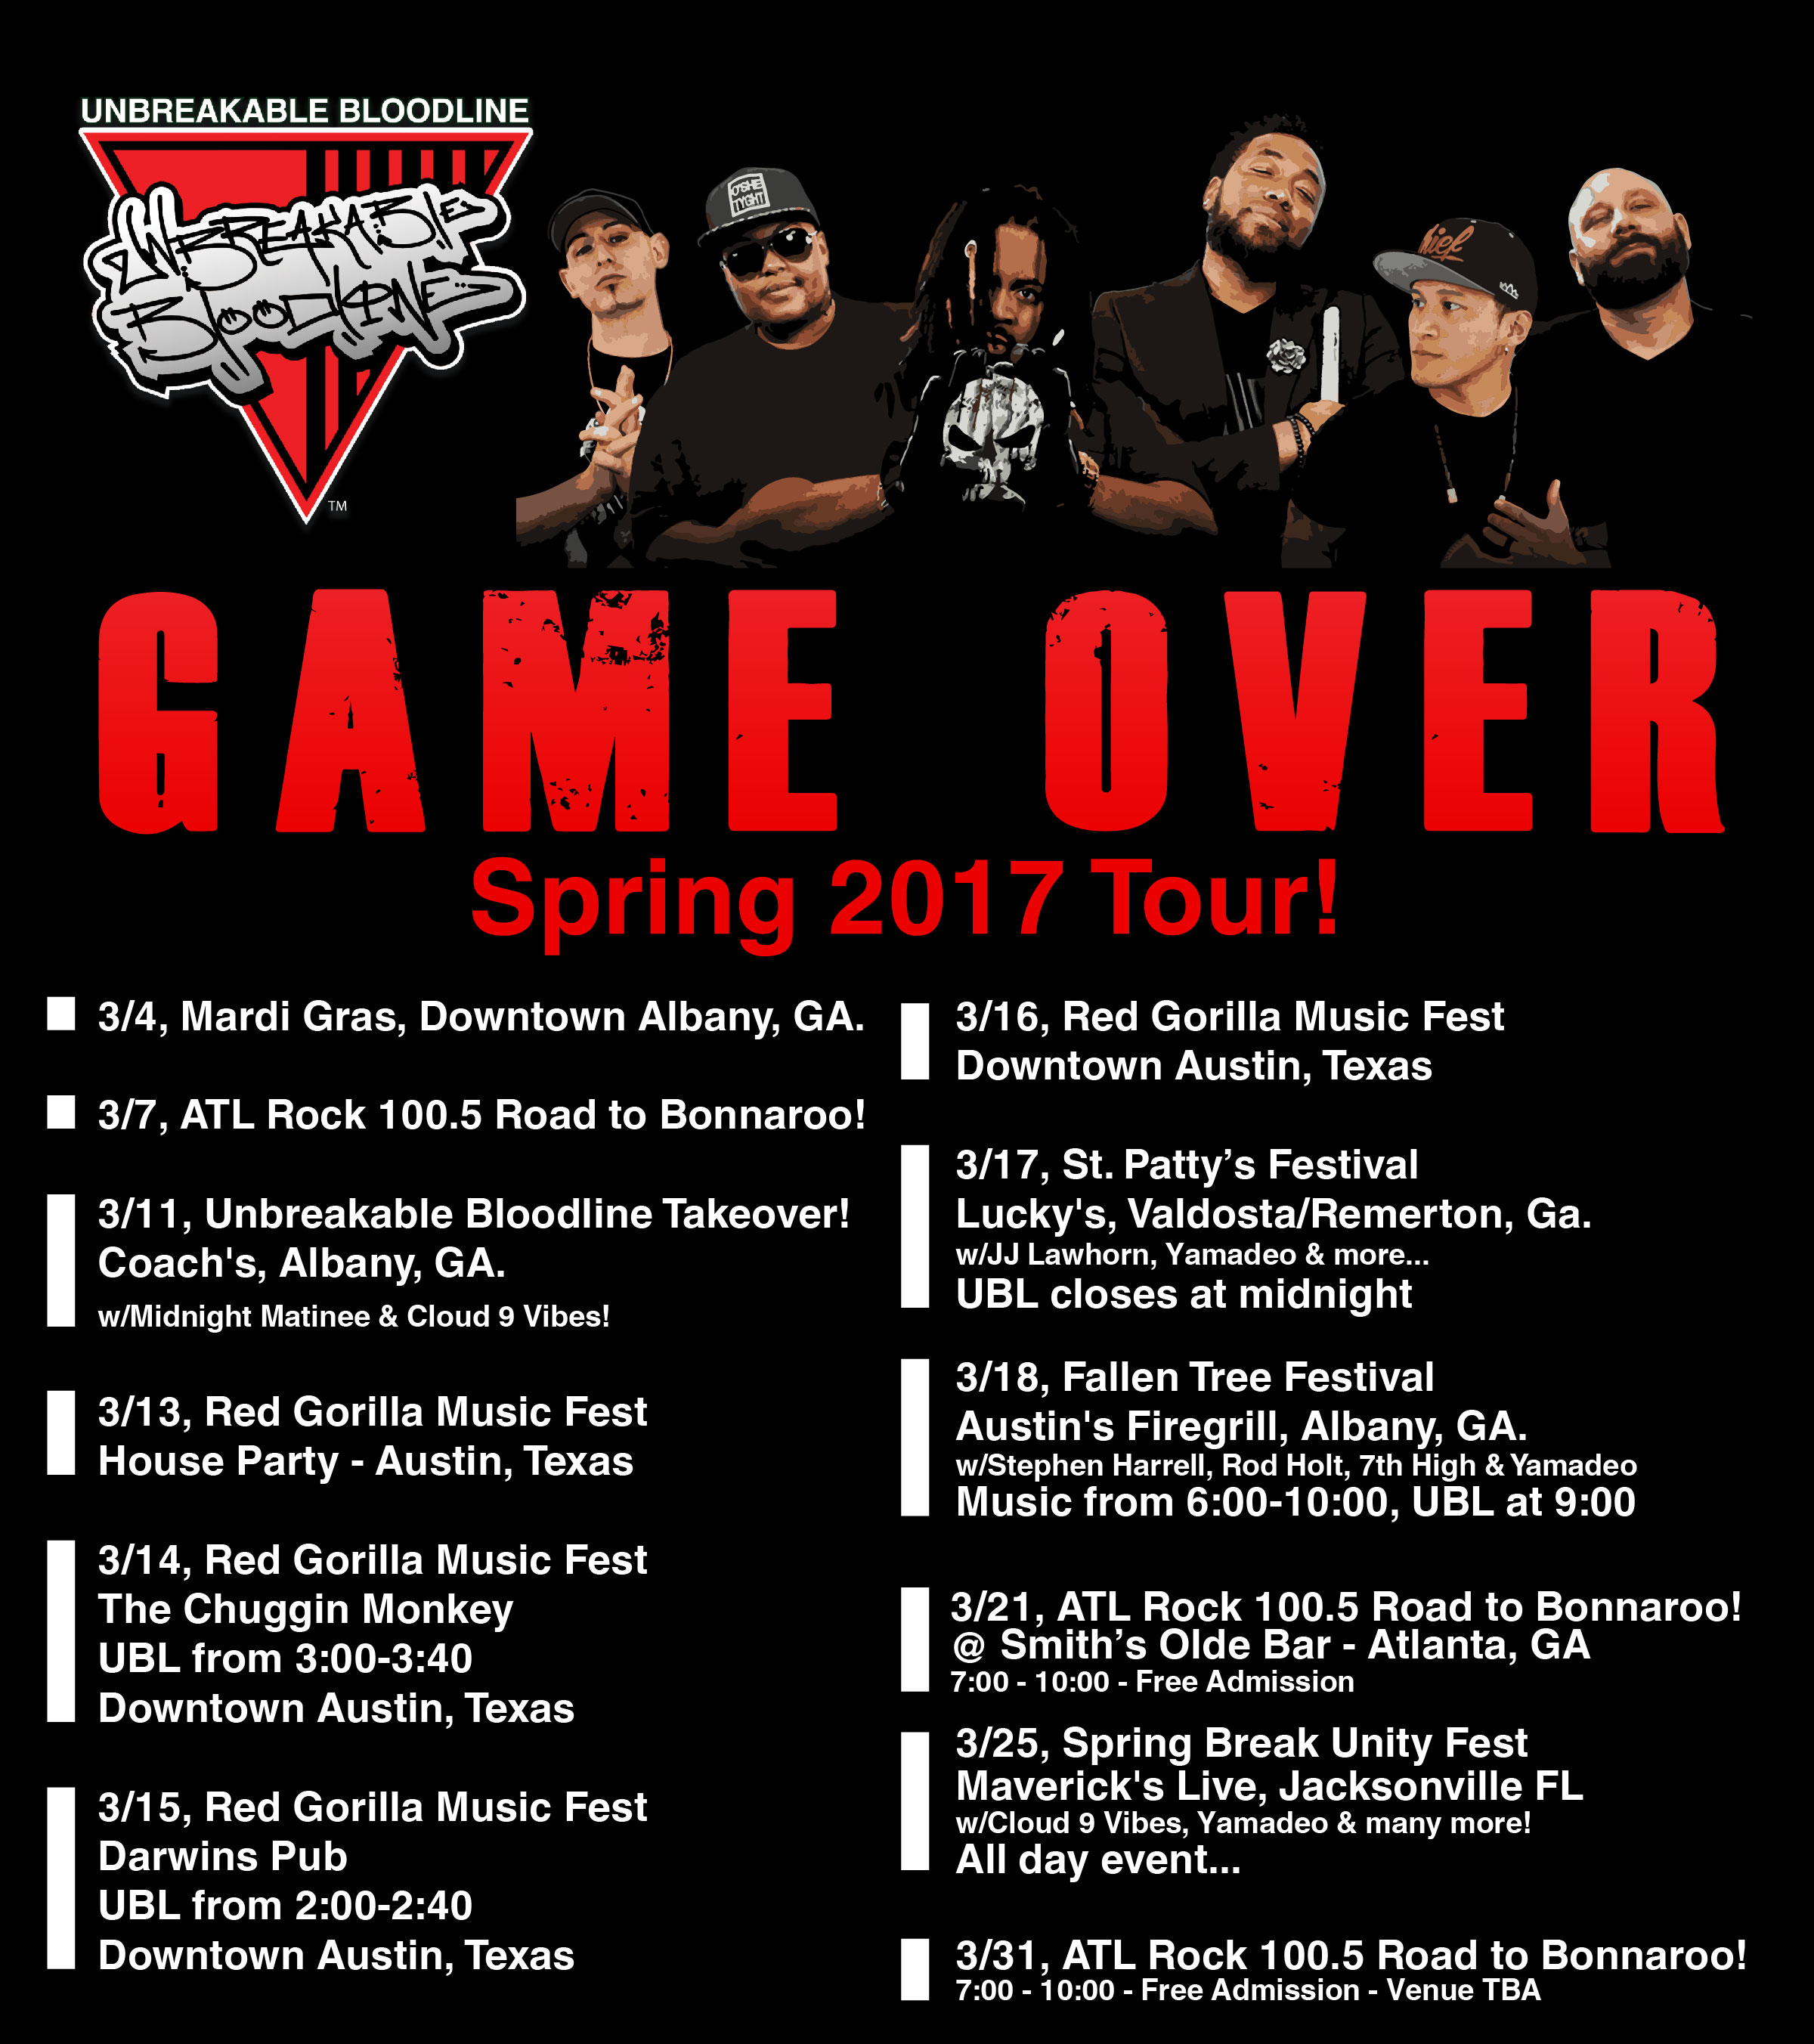 Game Over Tour